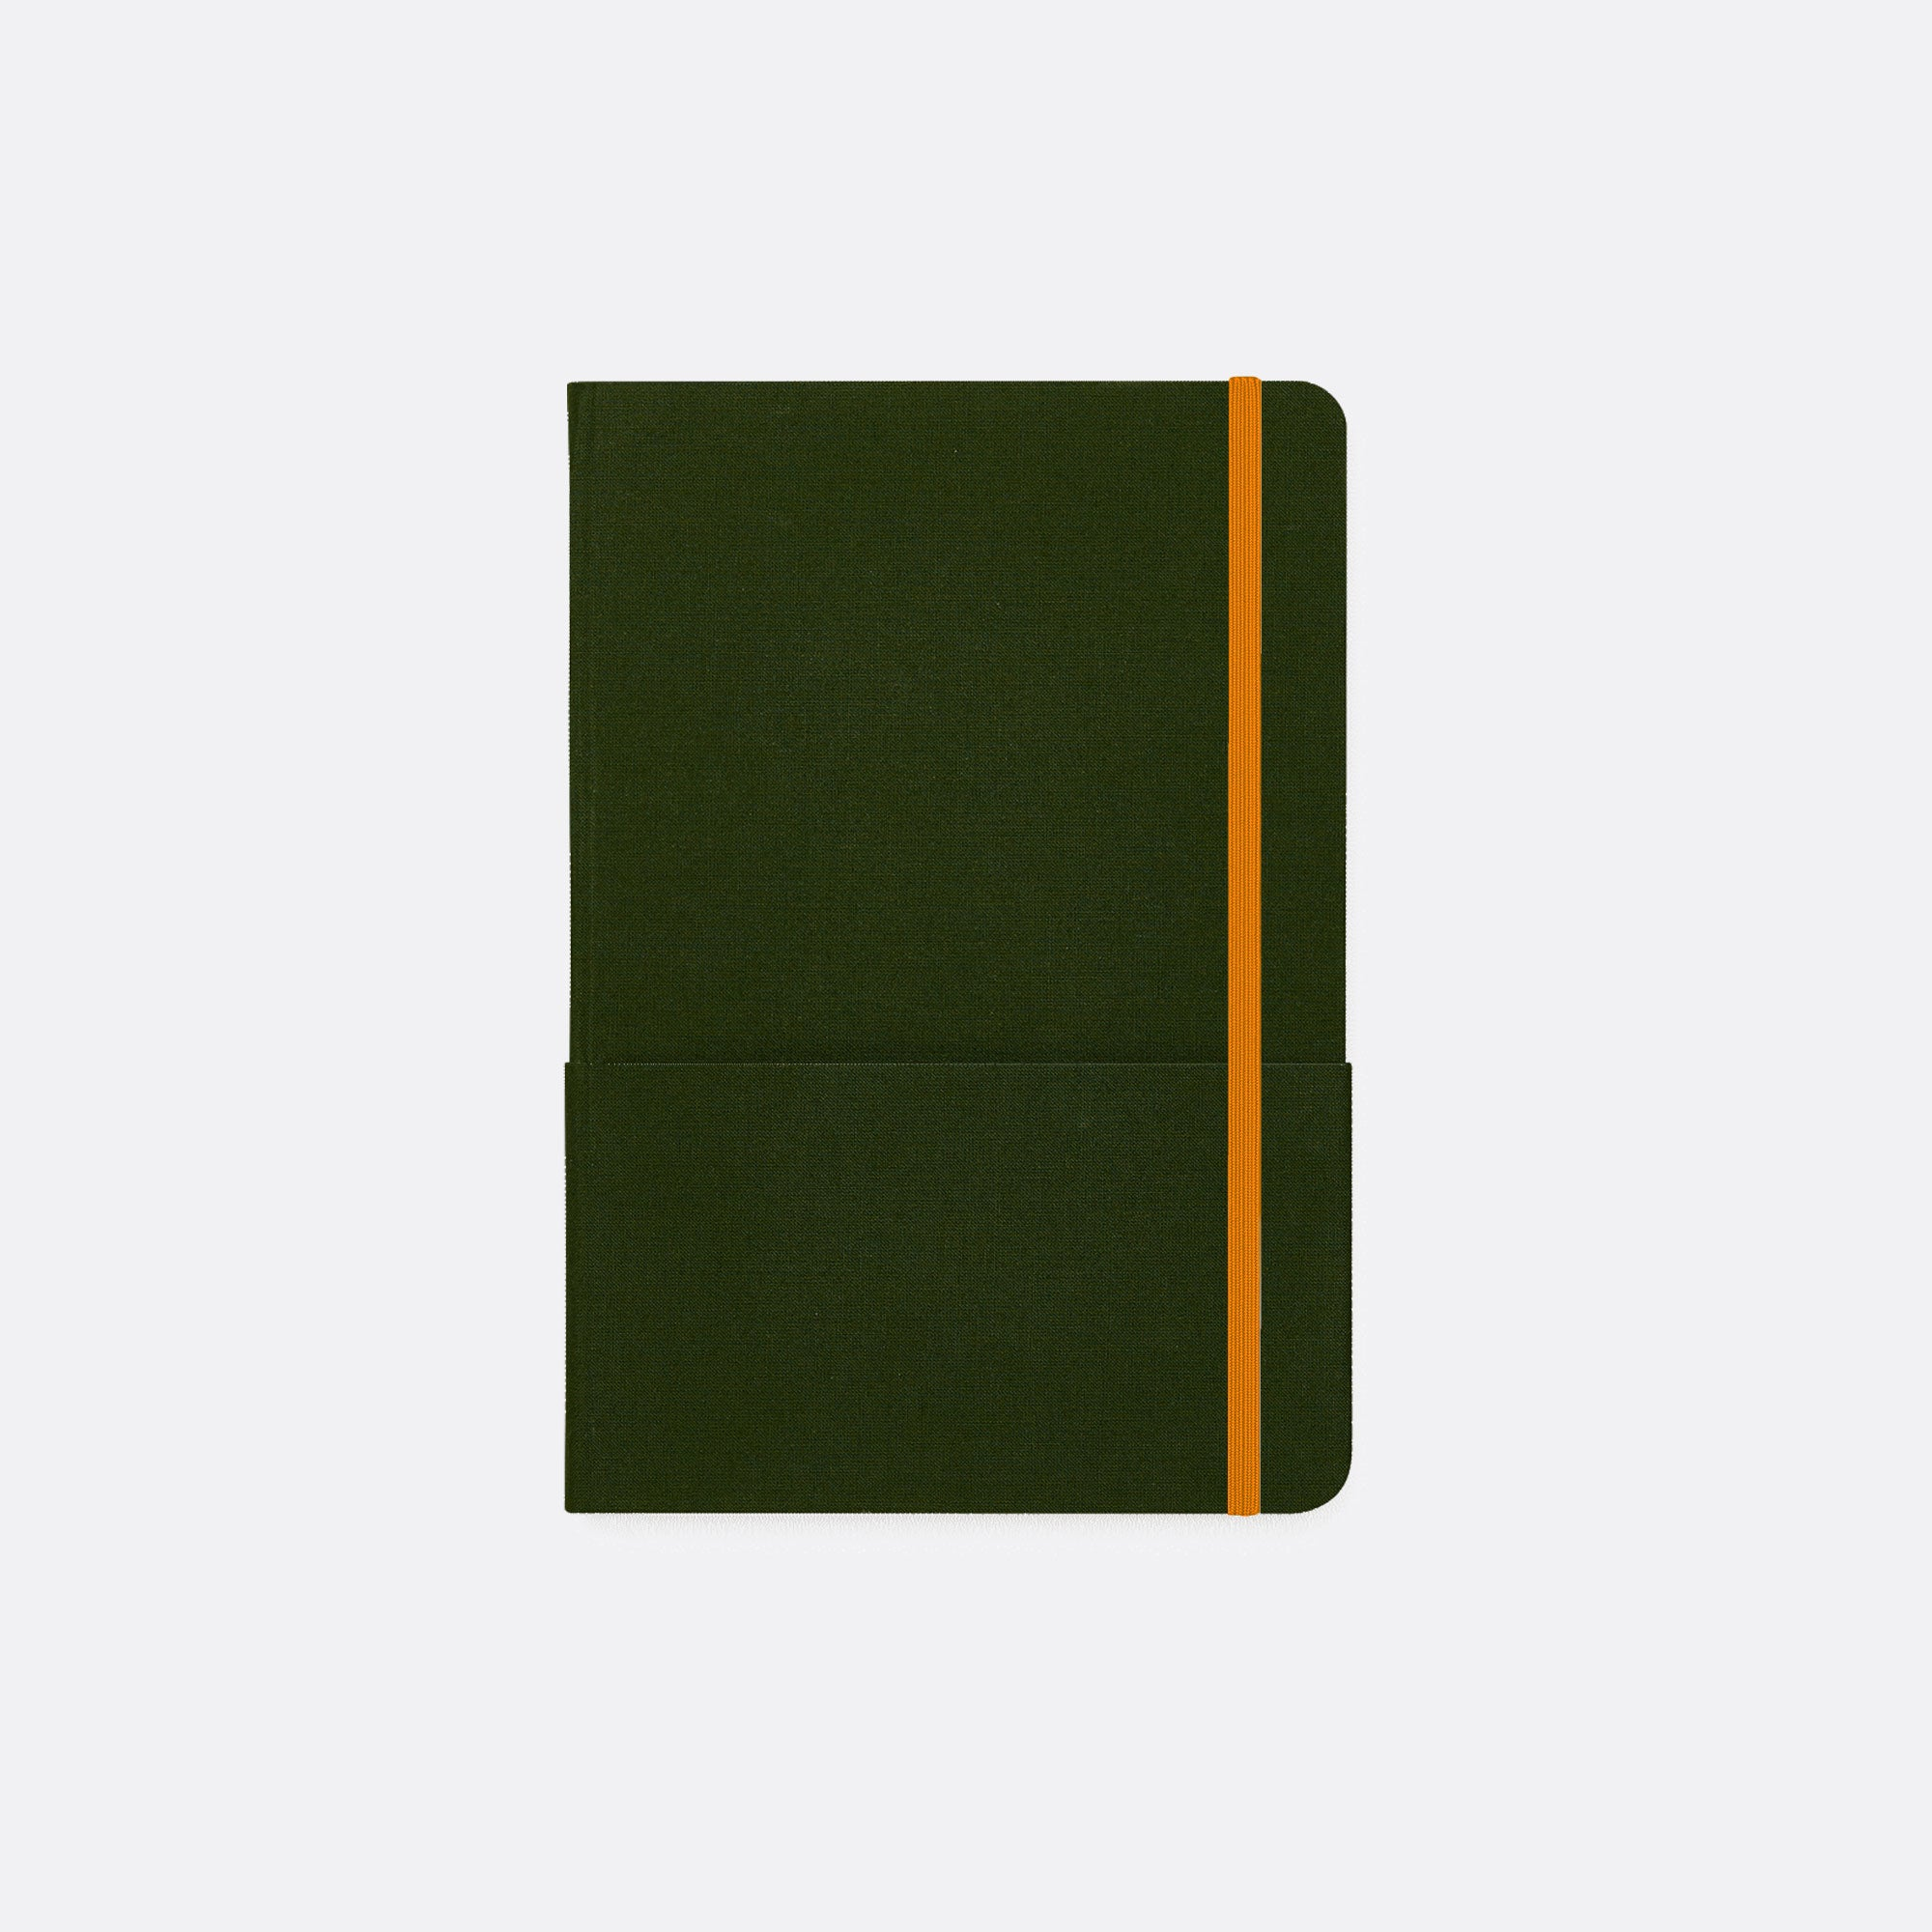 SUMMORIE Notebook: A5 Linen Hardback Ruled Line Inserts